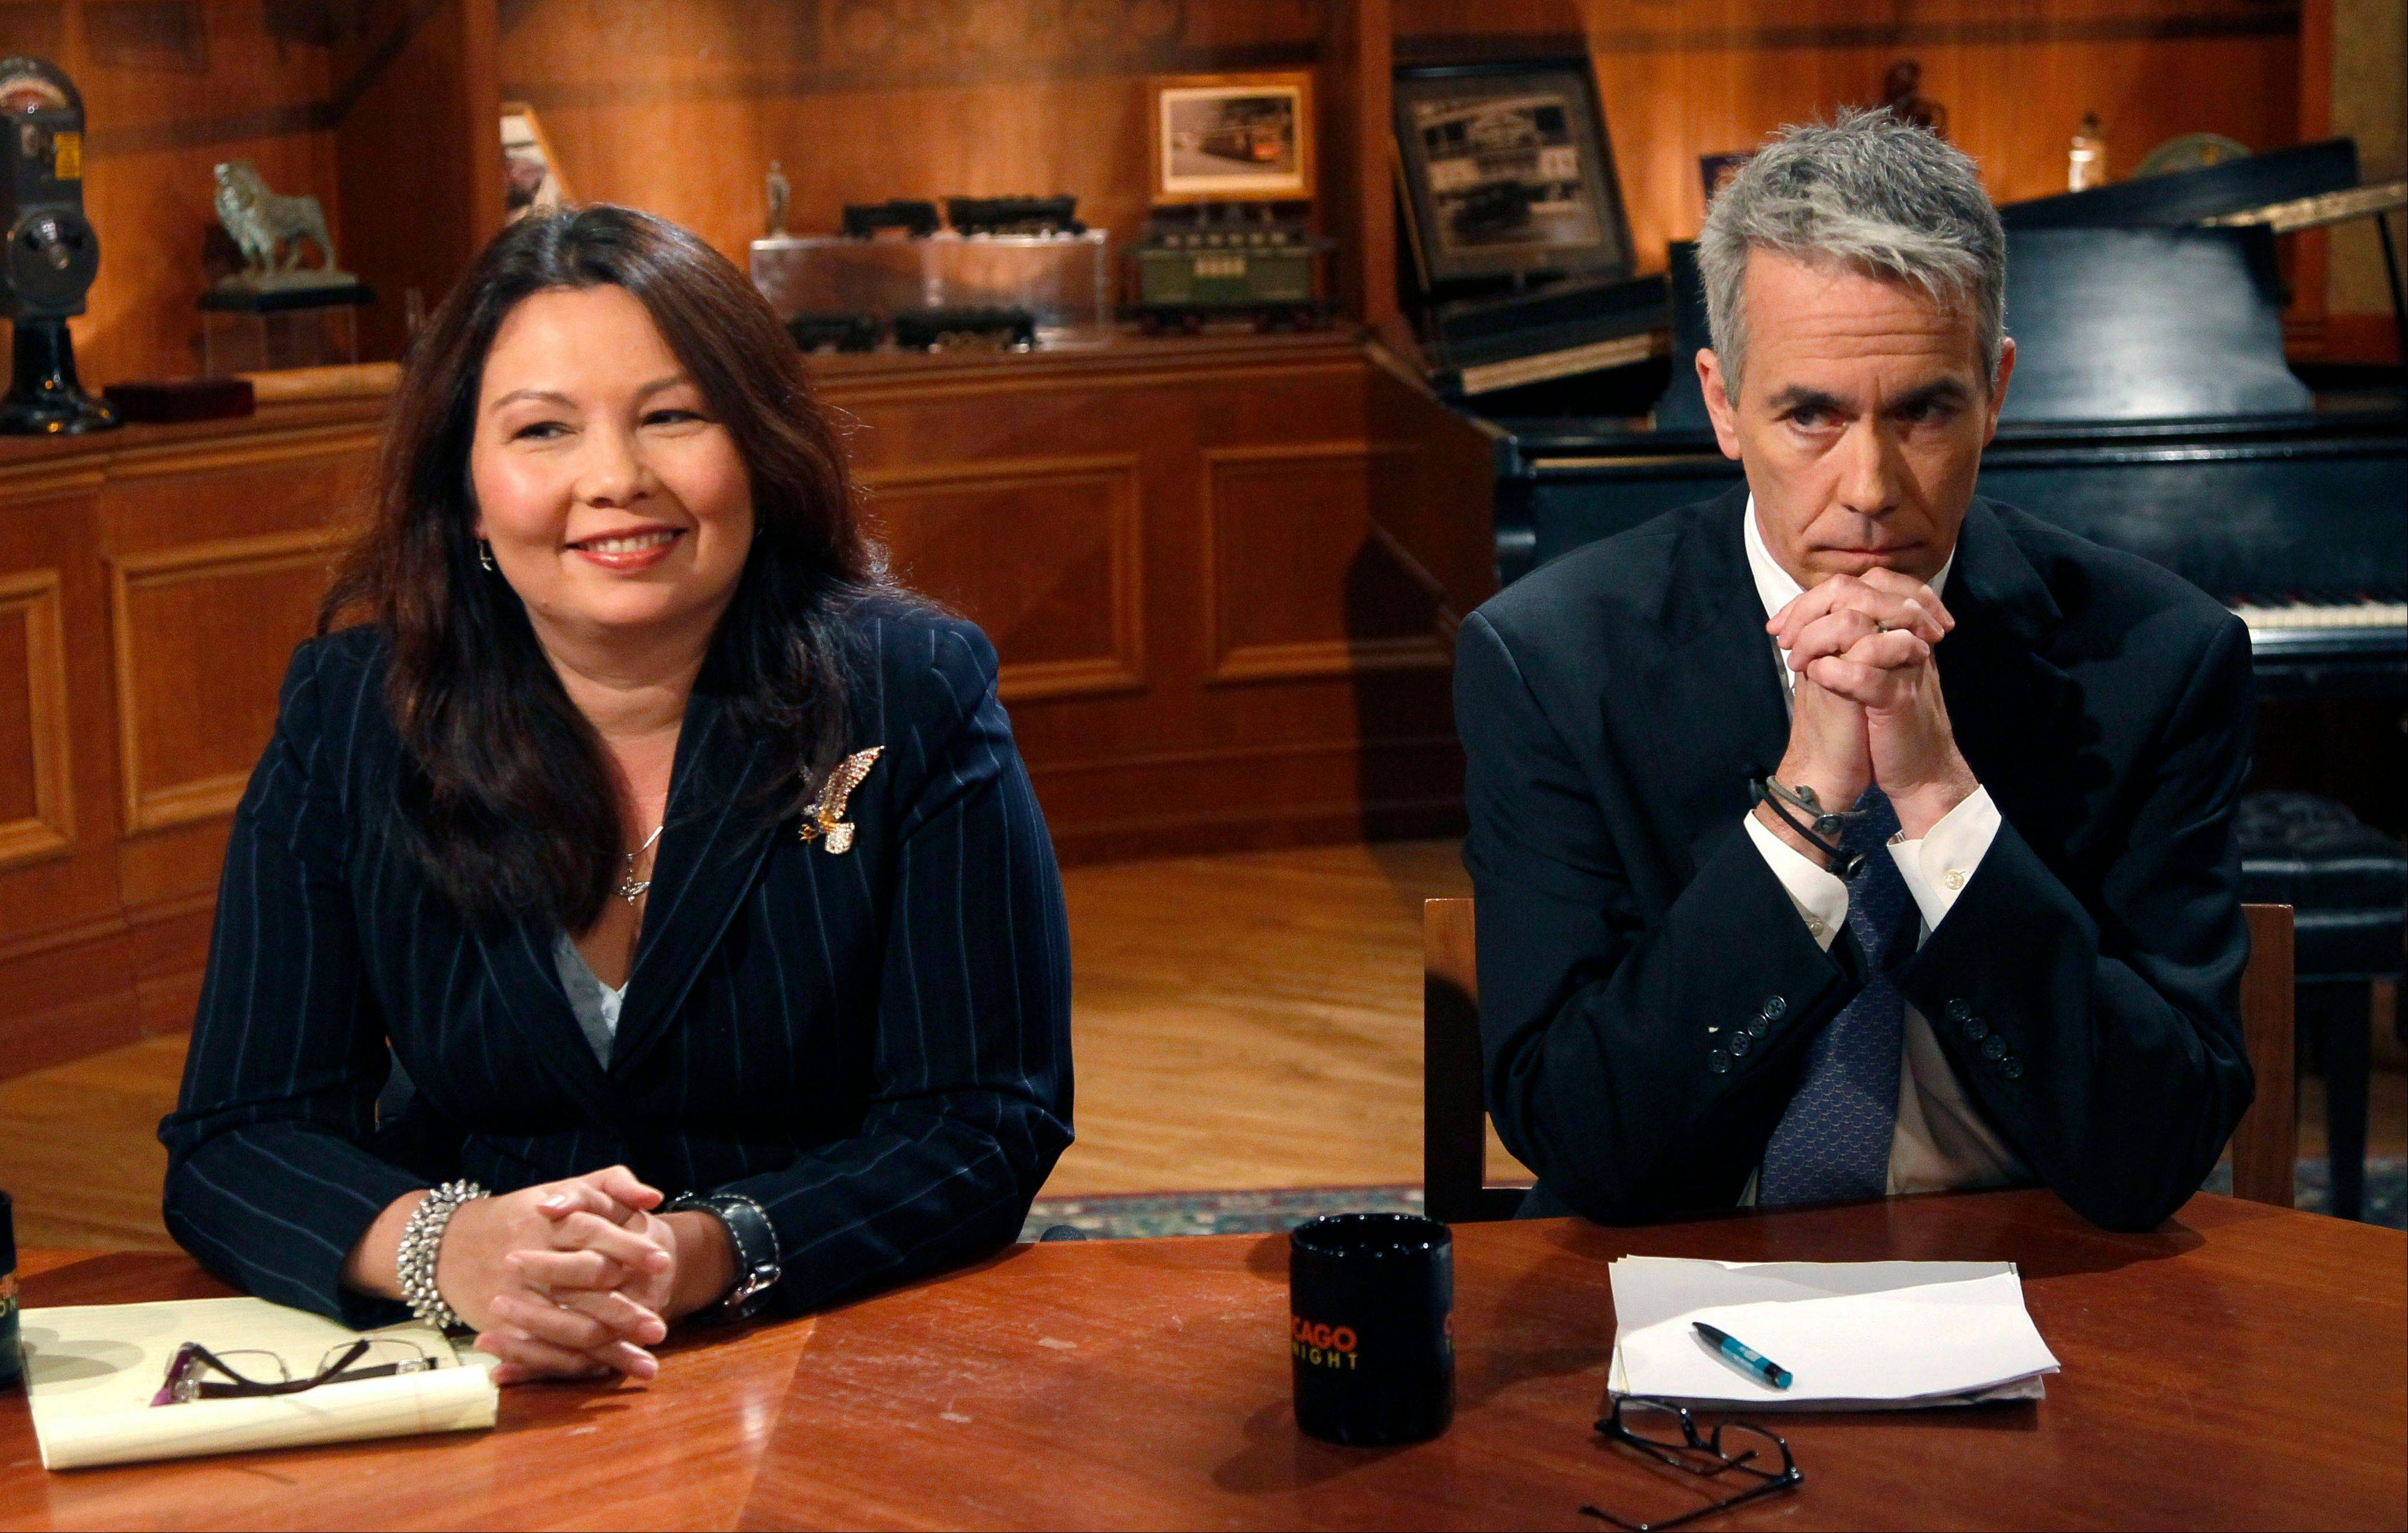 Republican U.S. Rep. Joe Walsh, right, and challenger Democrat Tammy Duckworth before a televised debate at the WTTW studios Thursday, Oct. 18, 2012, in Chicago. (AP Photo/Charles Rex Arbogast)